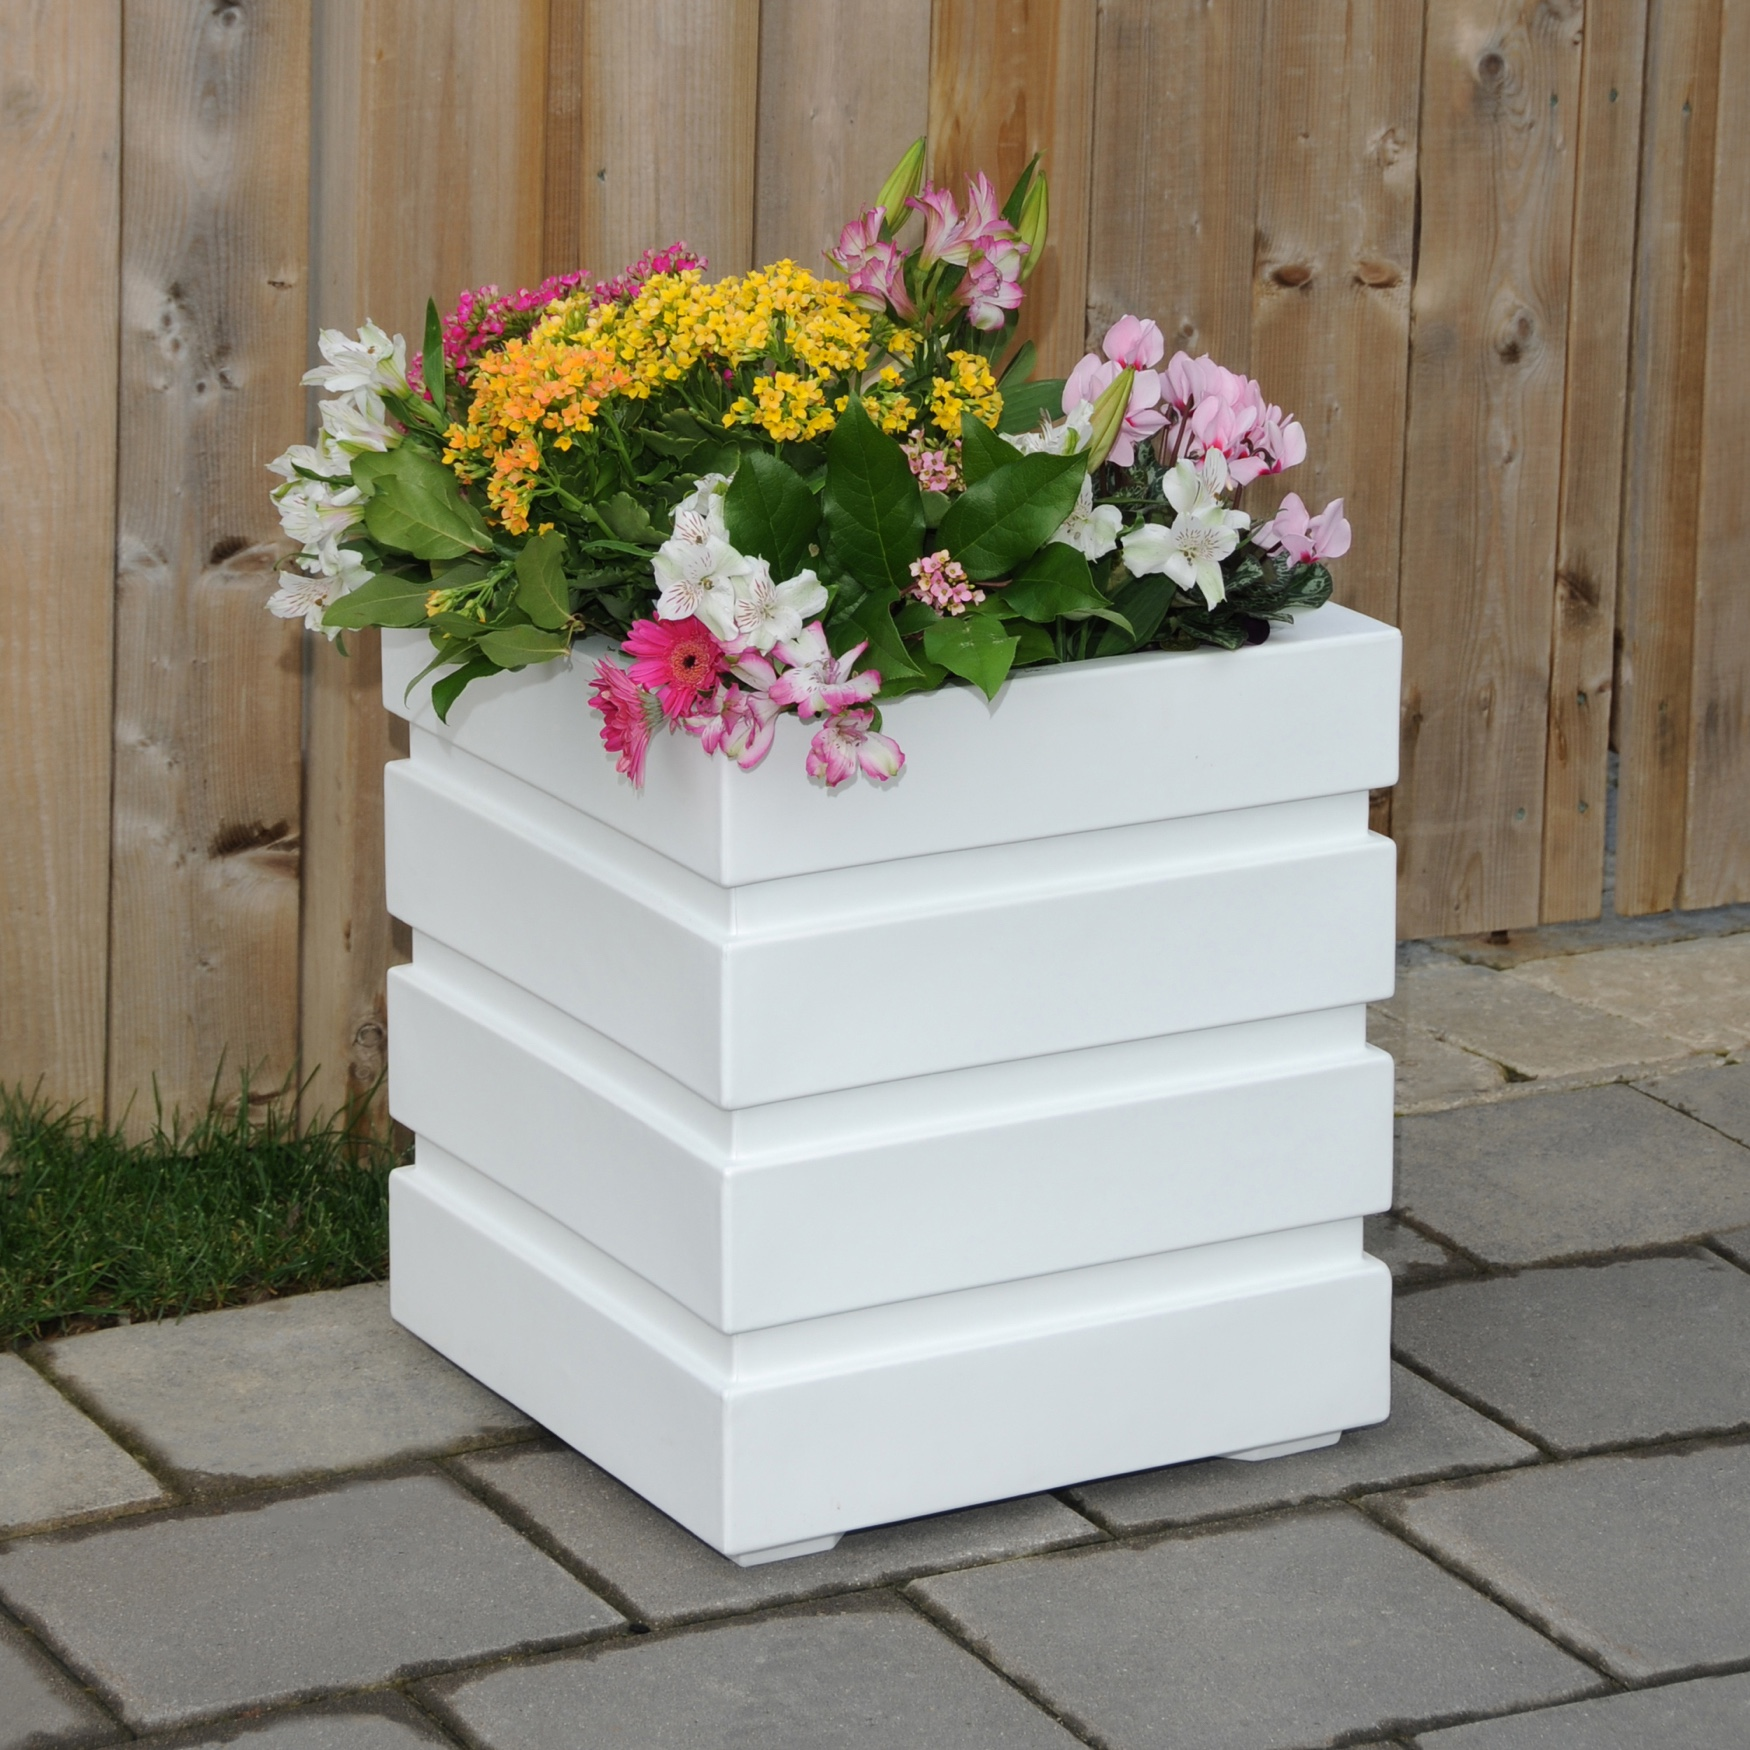 "Freeport Patio Planter 18""Sq.,"